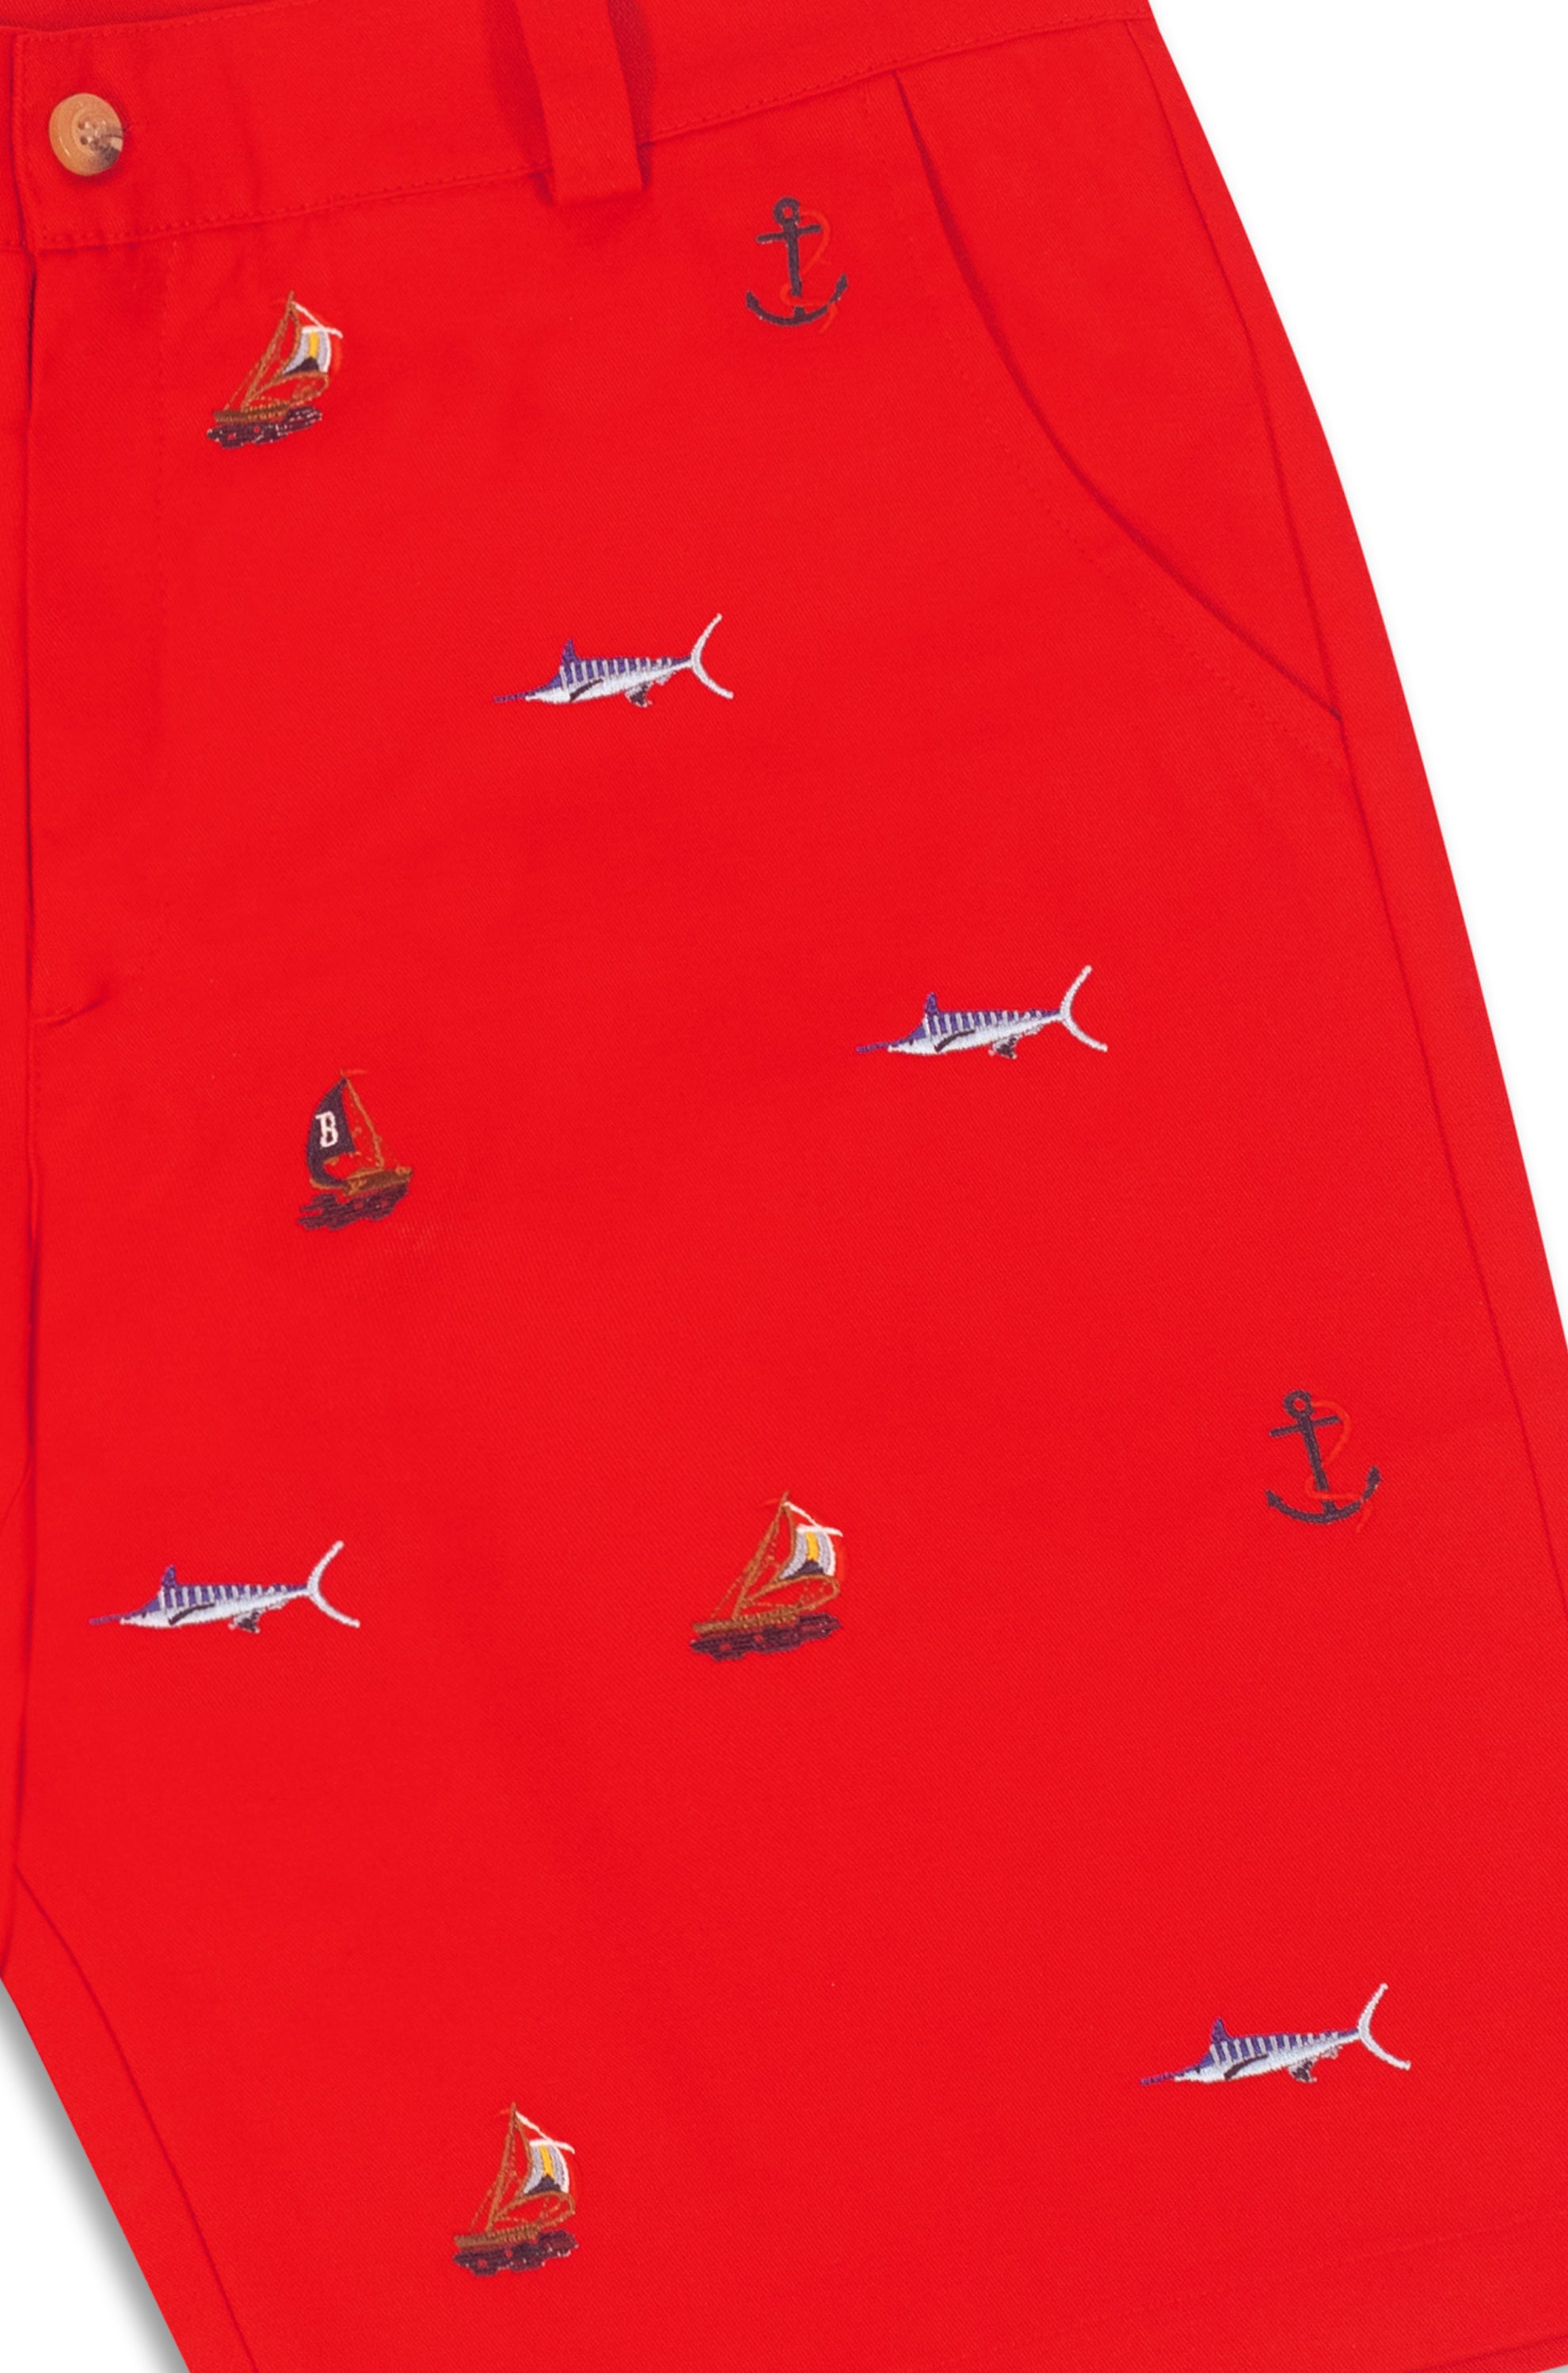 THE REGATTA EMBROIDERED SHORTS- RED